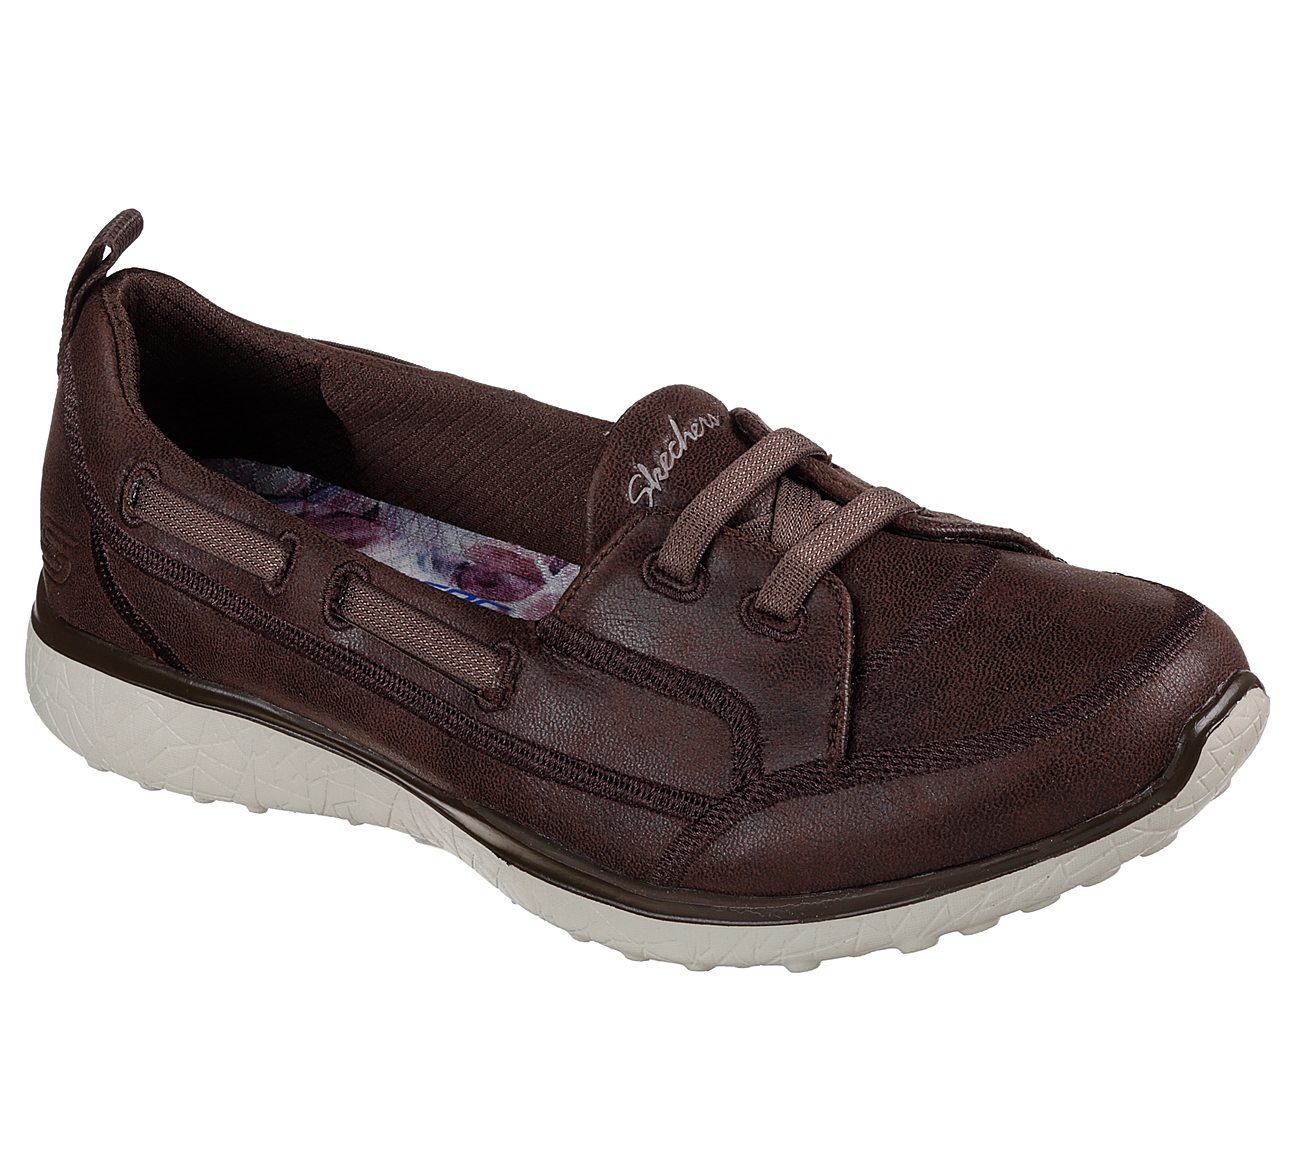 Skechers Microburst Dearest ... Women's Slip-On Shoes RyeW8CwzW